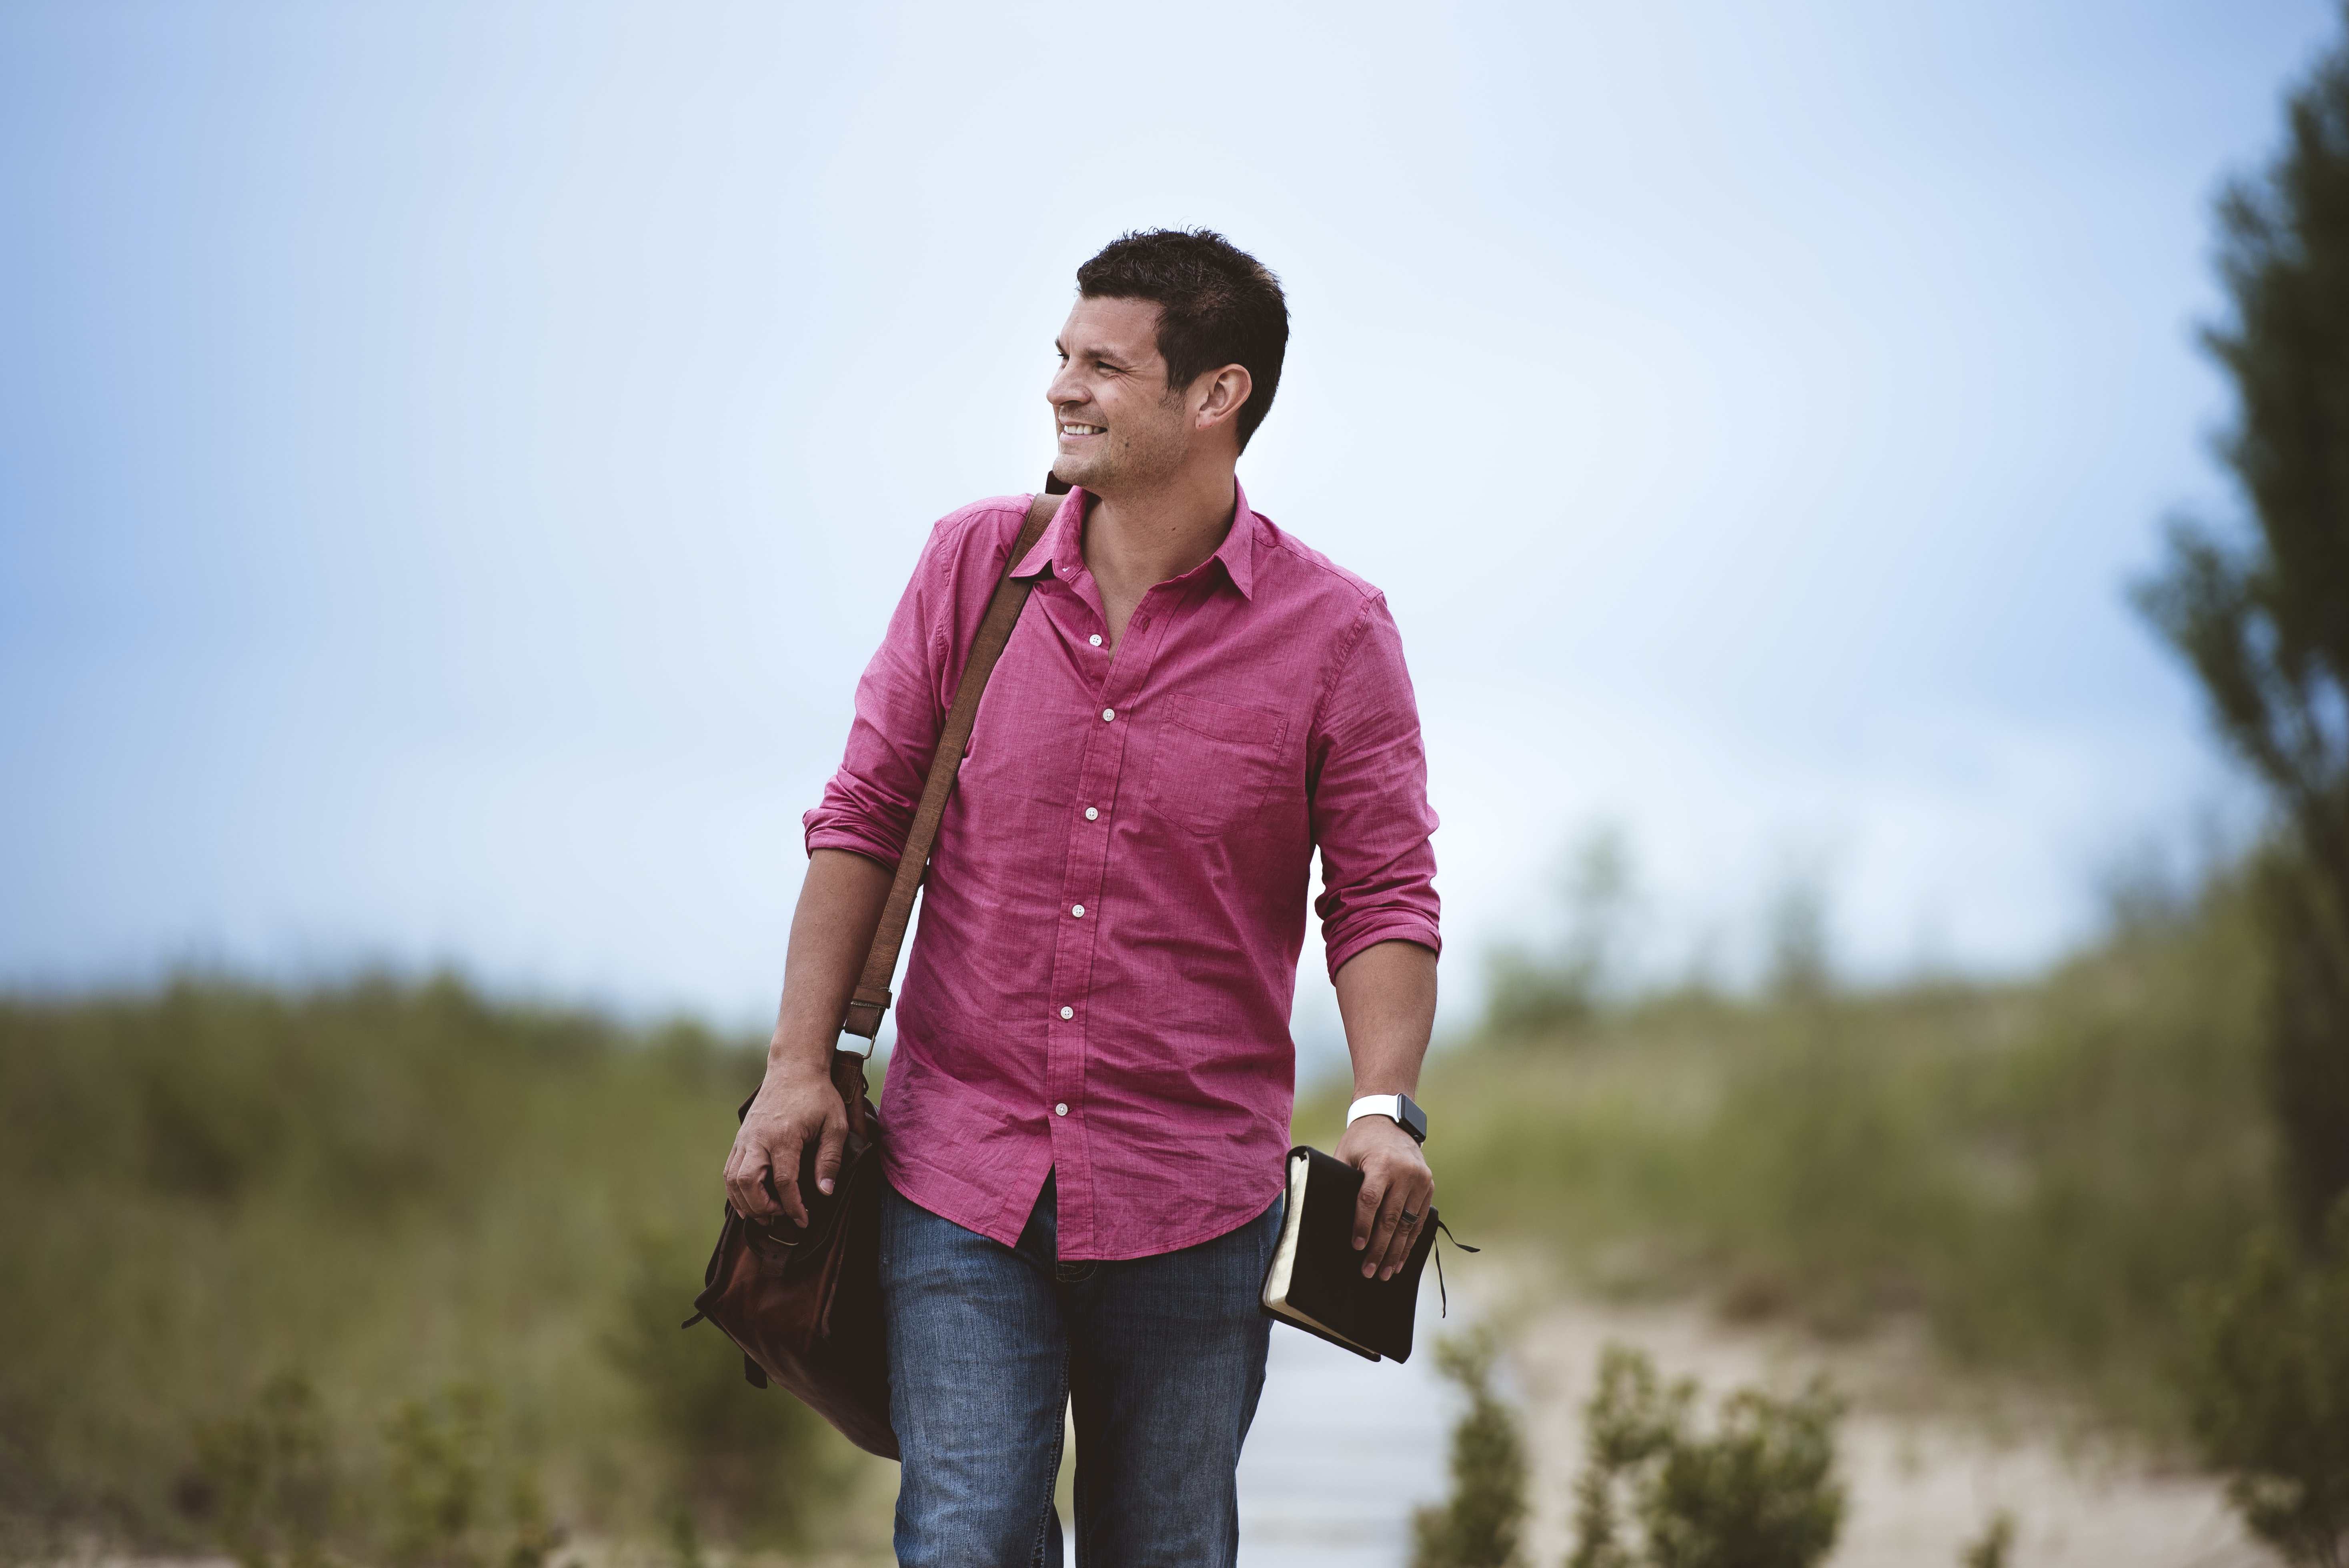 A man in a pink shirt with a leather bag and a book walking on a dirt path